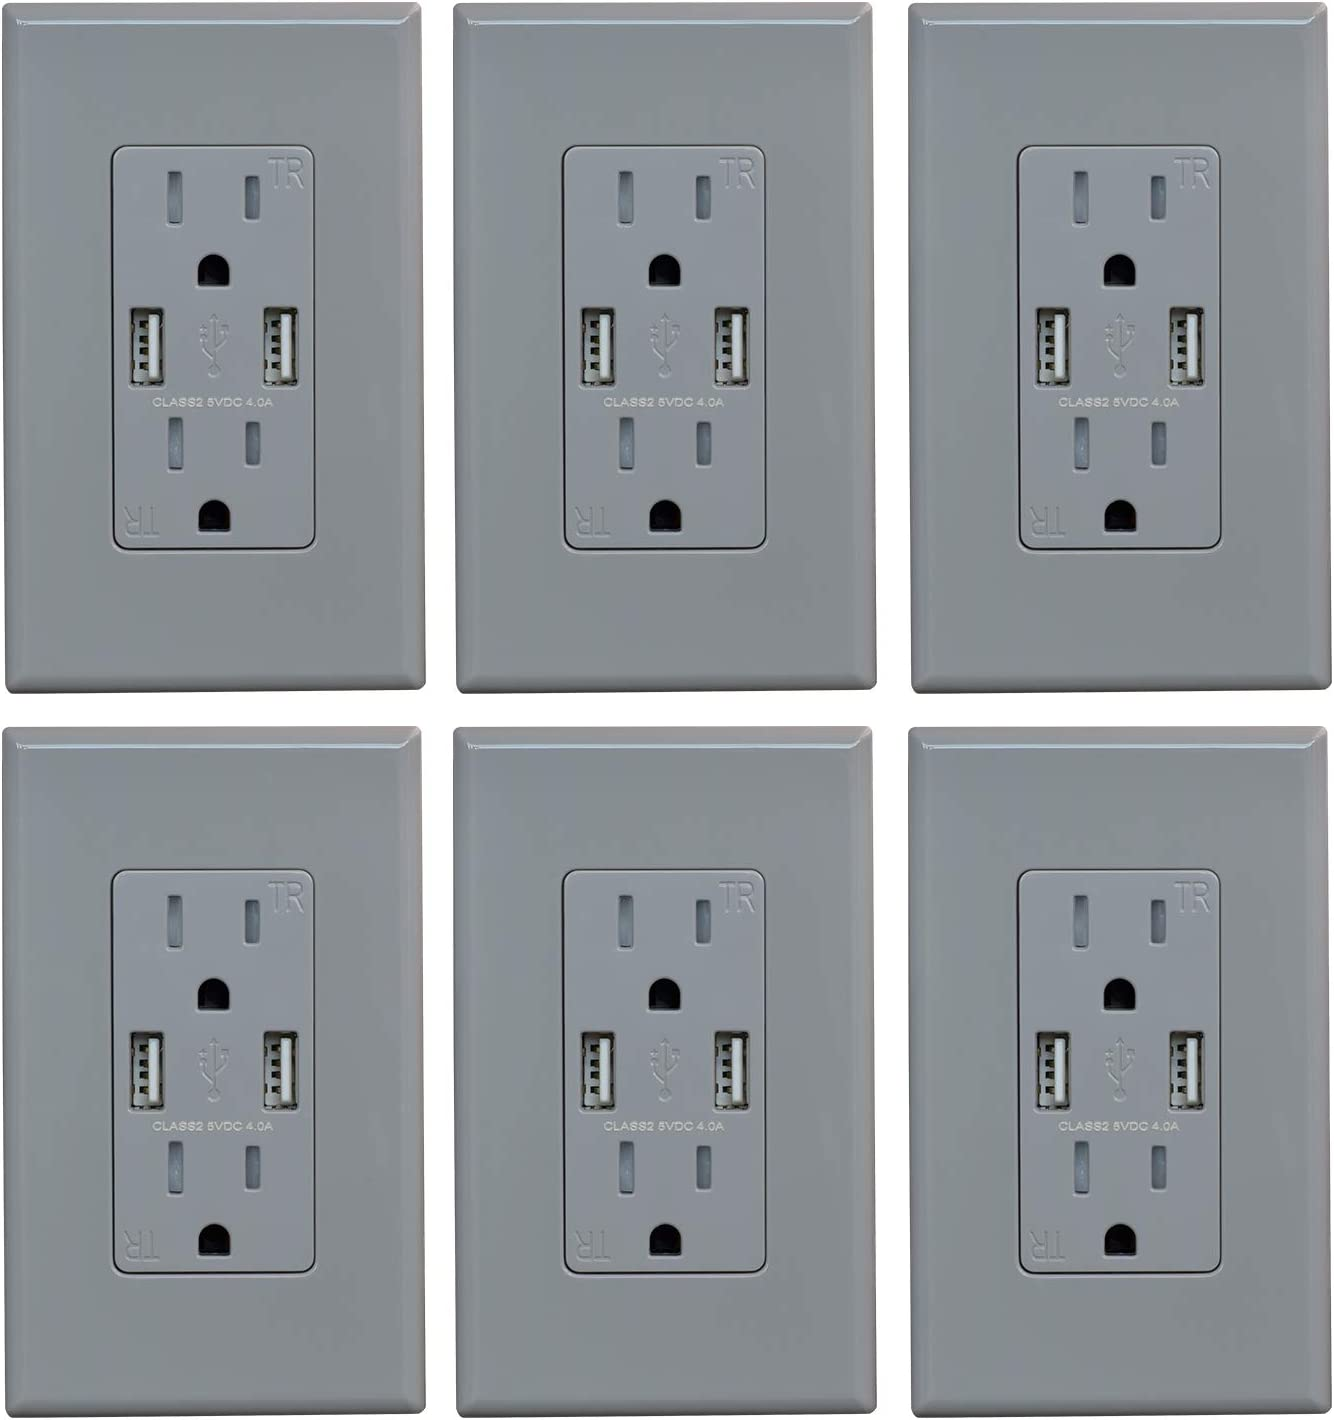 (6 Pack, Glossy Gray) ELEGRP USB Outlet Wall Charger, Dual High Speed 4.0 Amp USB Ports with Smart Chip, 15 Amp Duplex Tamper Resistant Receptacle Plug NEMA 5-15R, Wall Plate Included, UL Listed - -